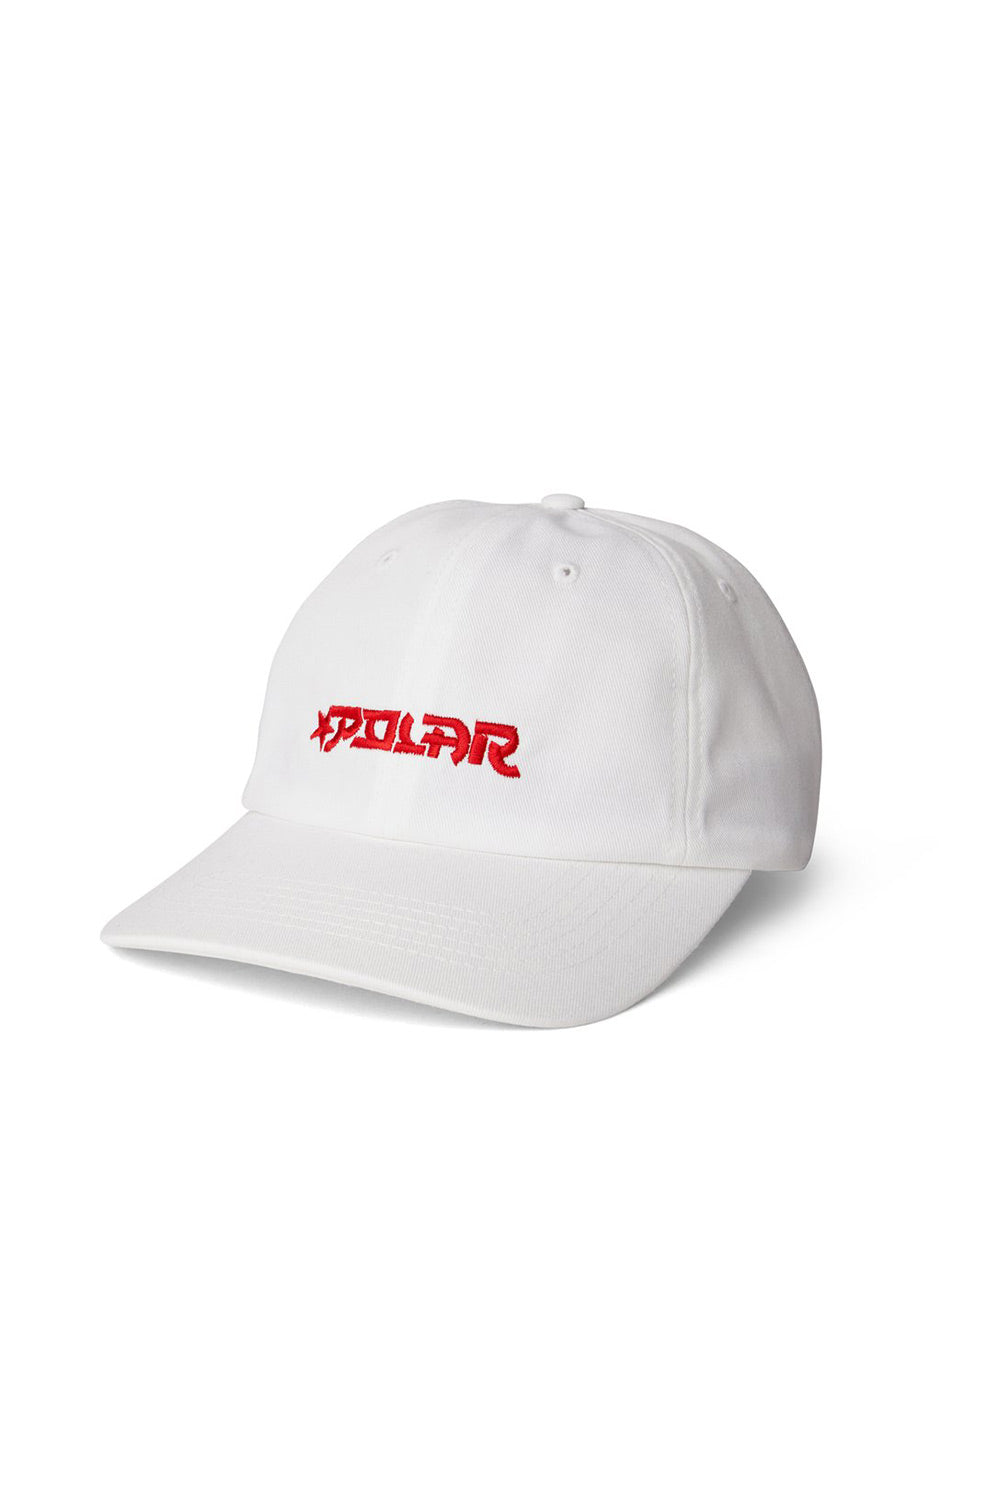 Polar Skate Co Star Cap